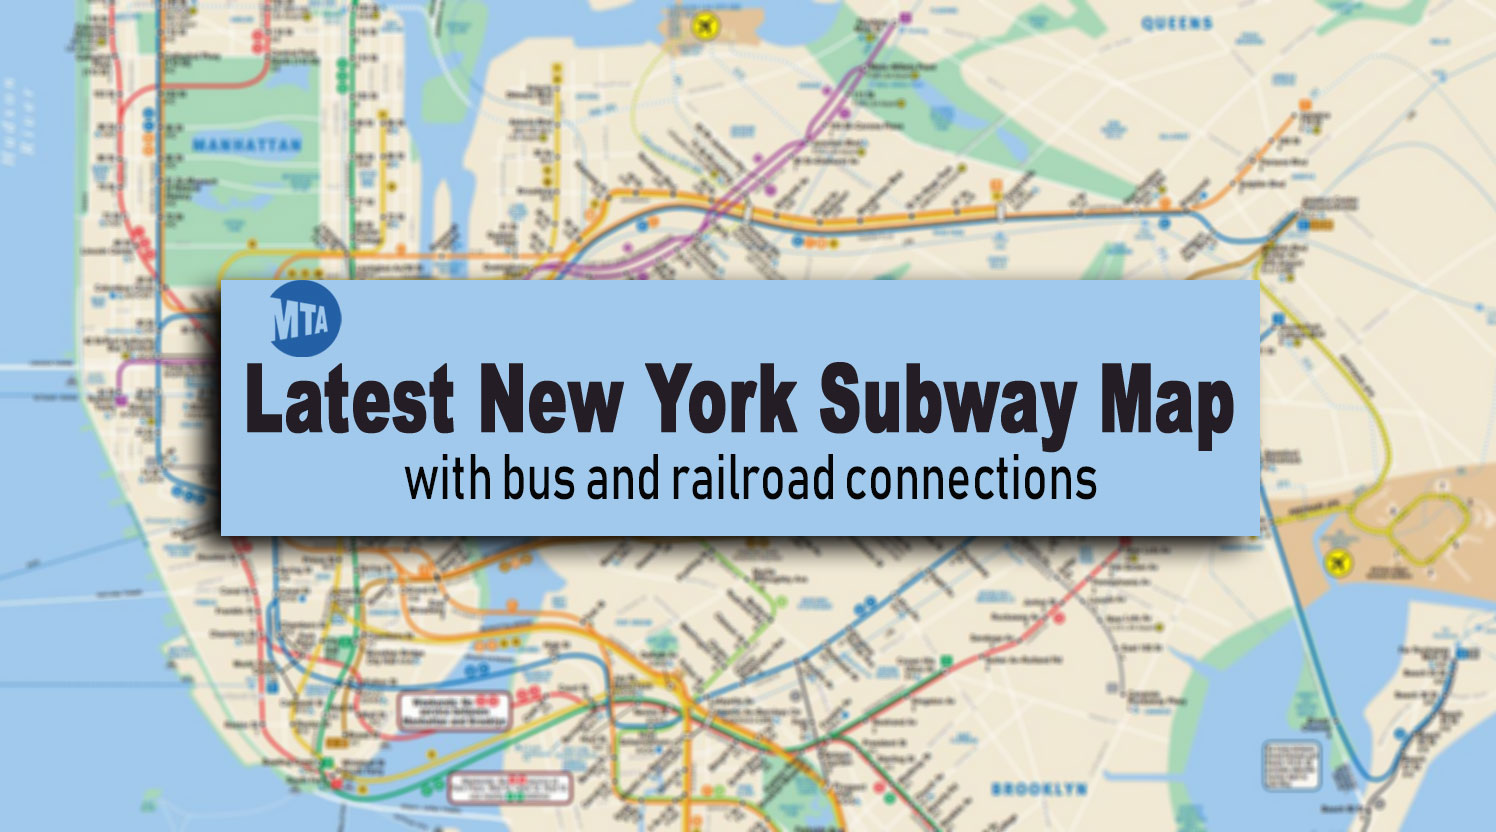 Subway Maps Of Nyc.New York Subway Map Latest Version With Line And Station Changes